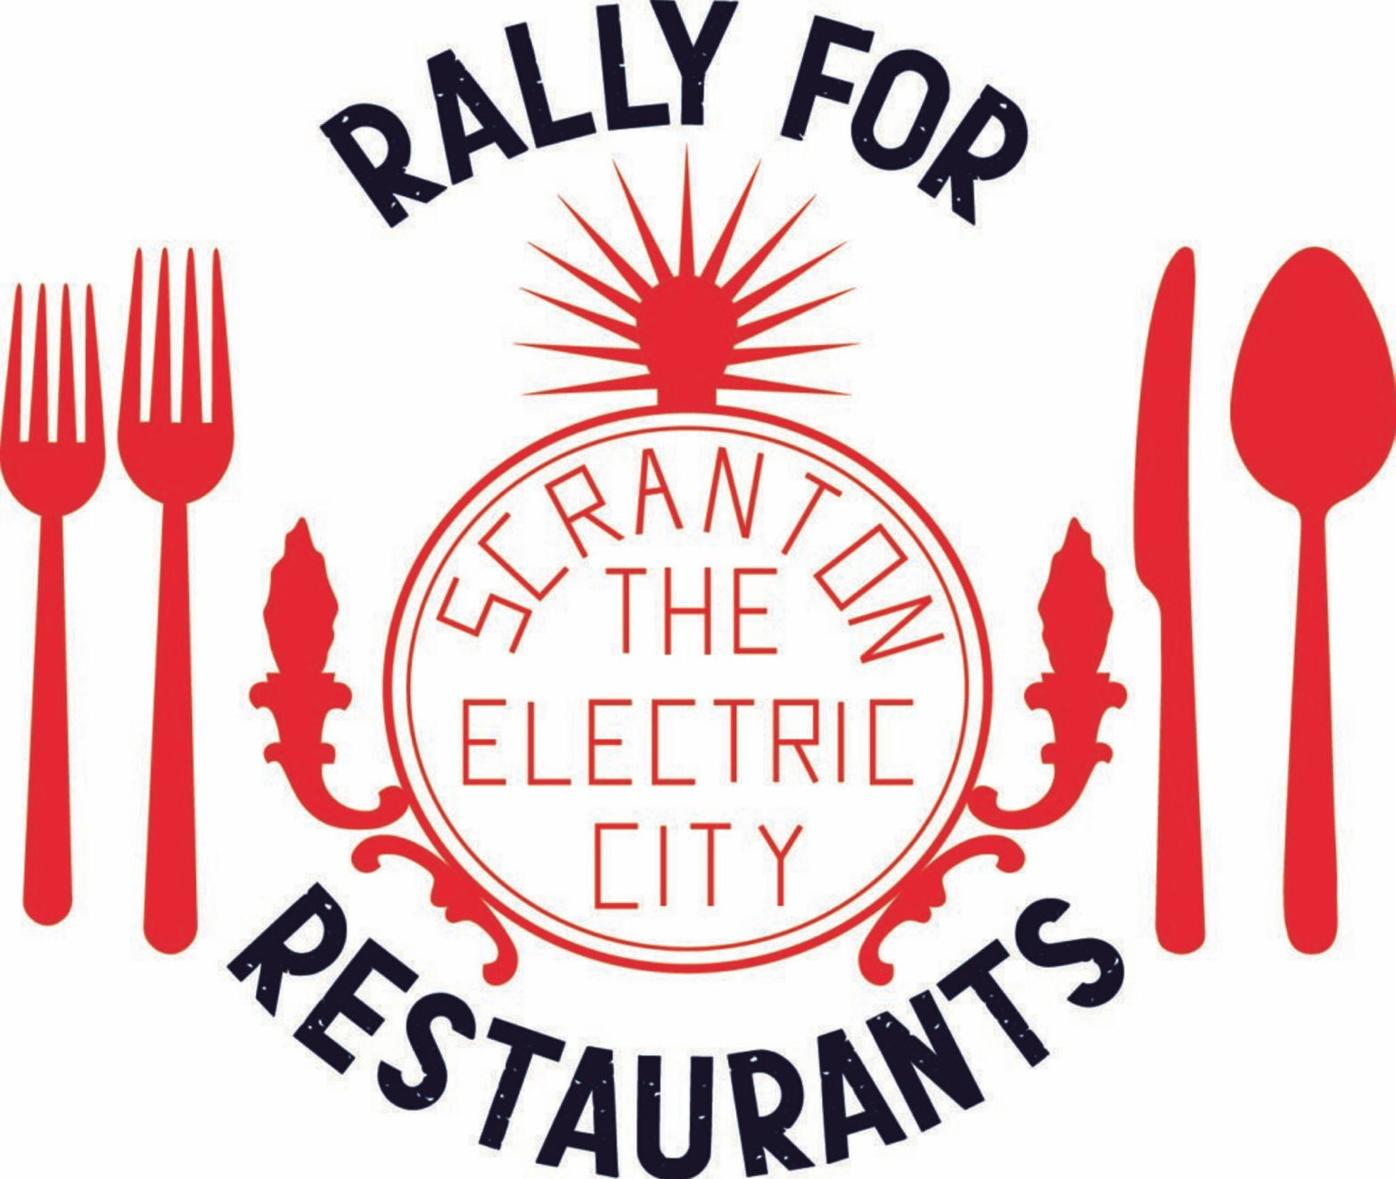 RallyForRestaurants